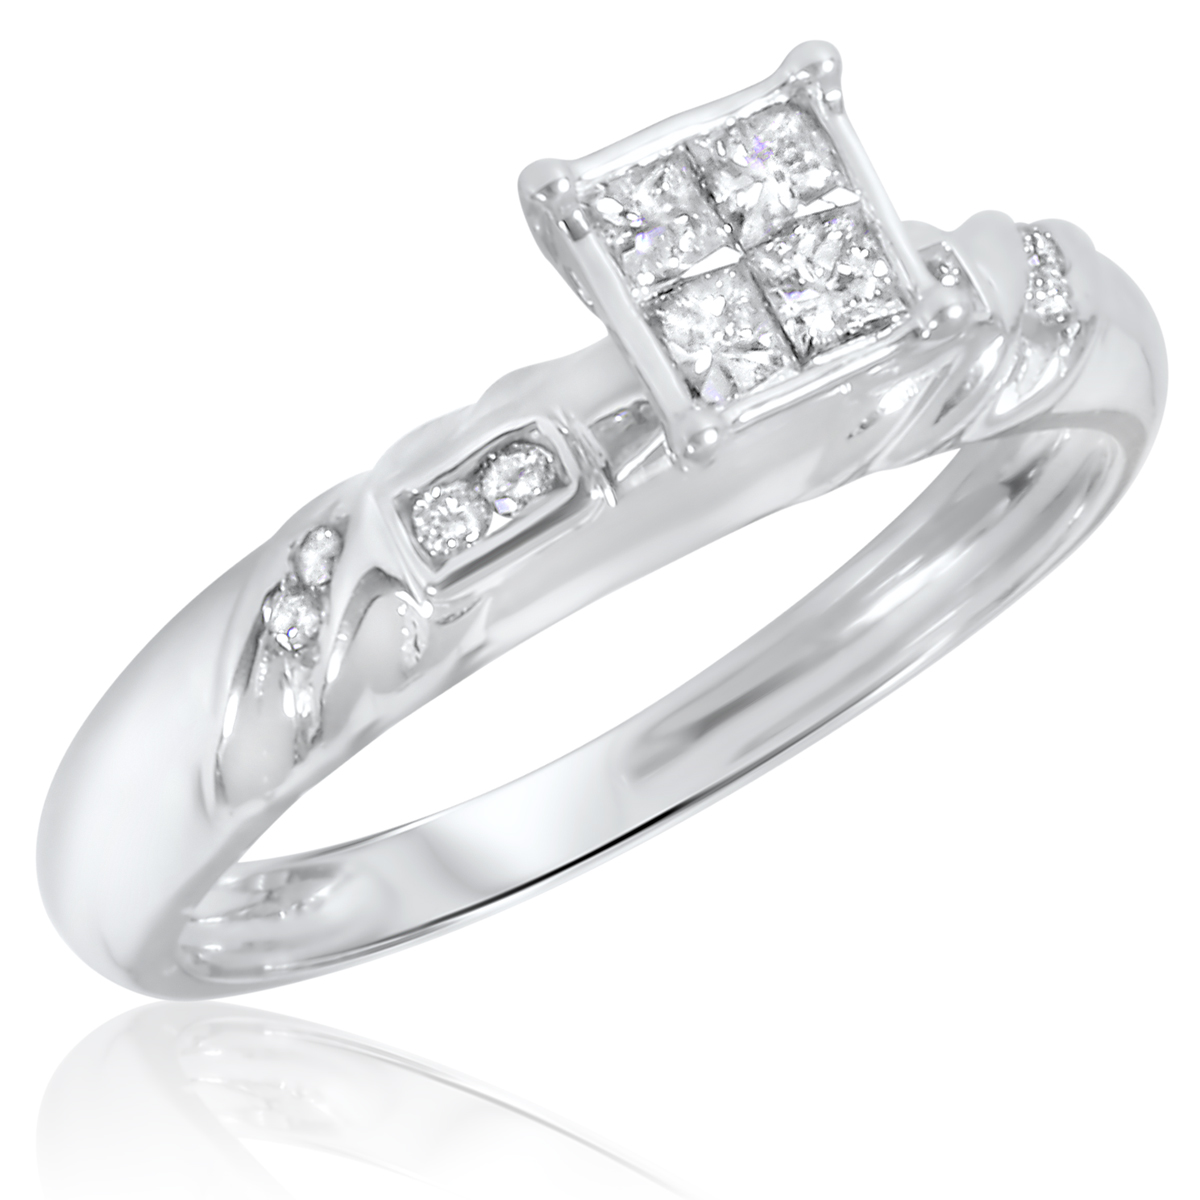 Wedding Rings White Gold Ring And Many More Items From India White Gold Ring Diamond Rings